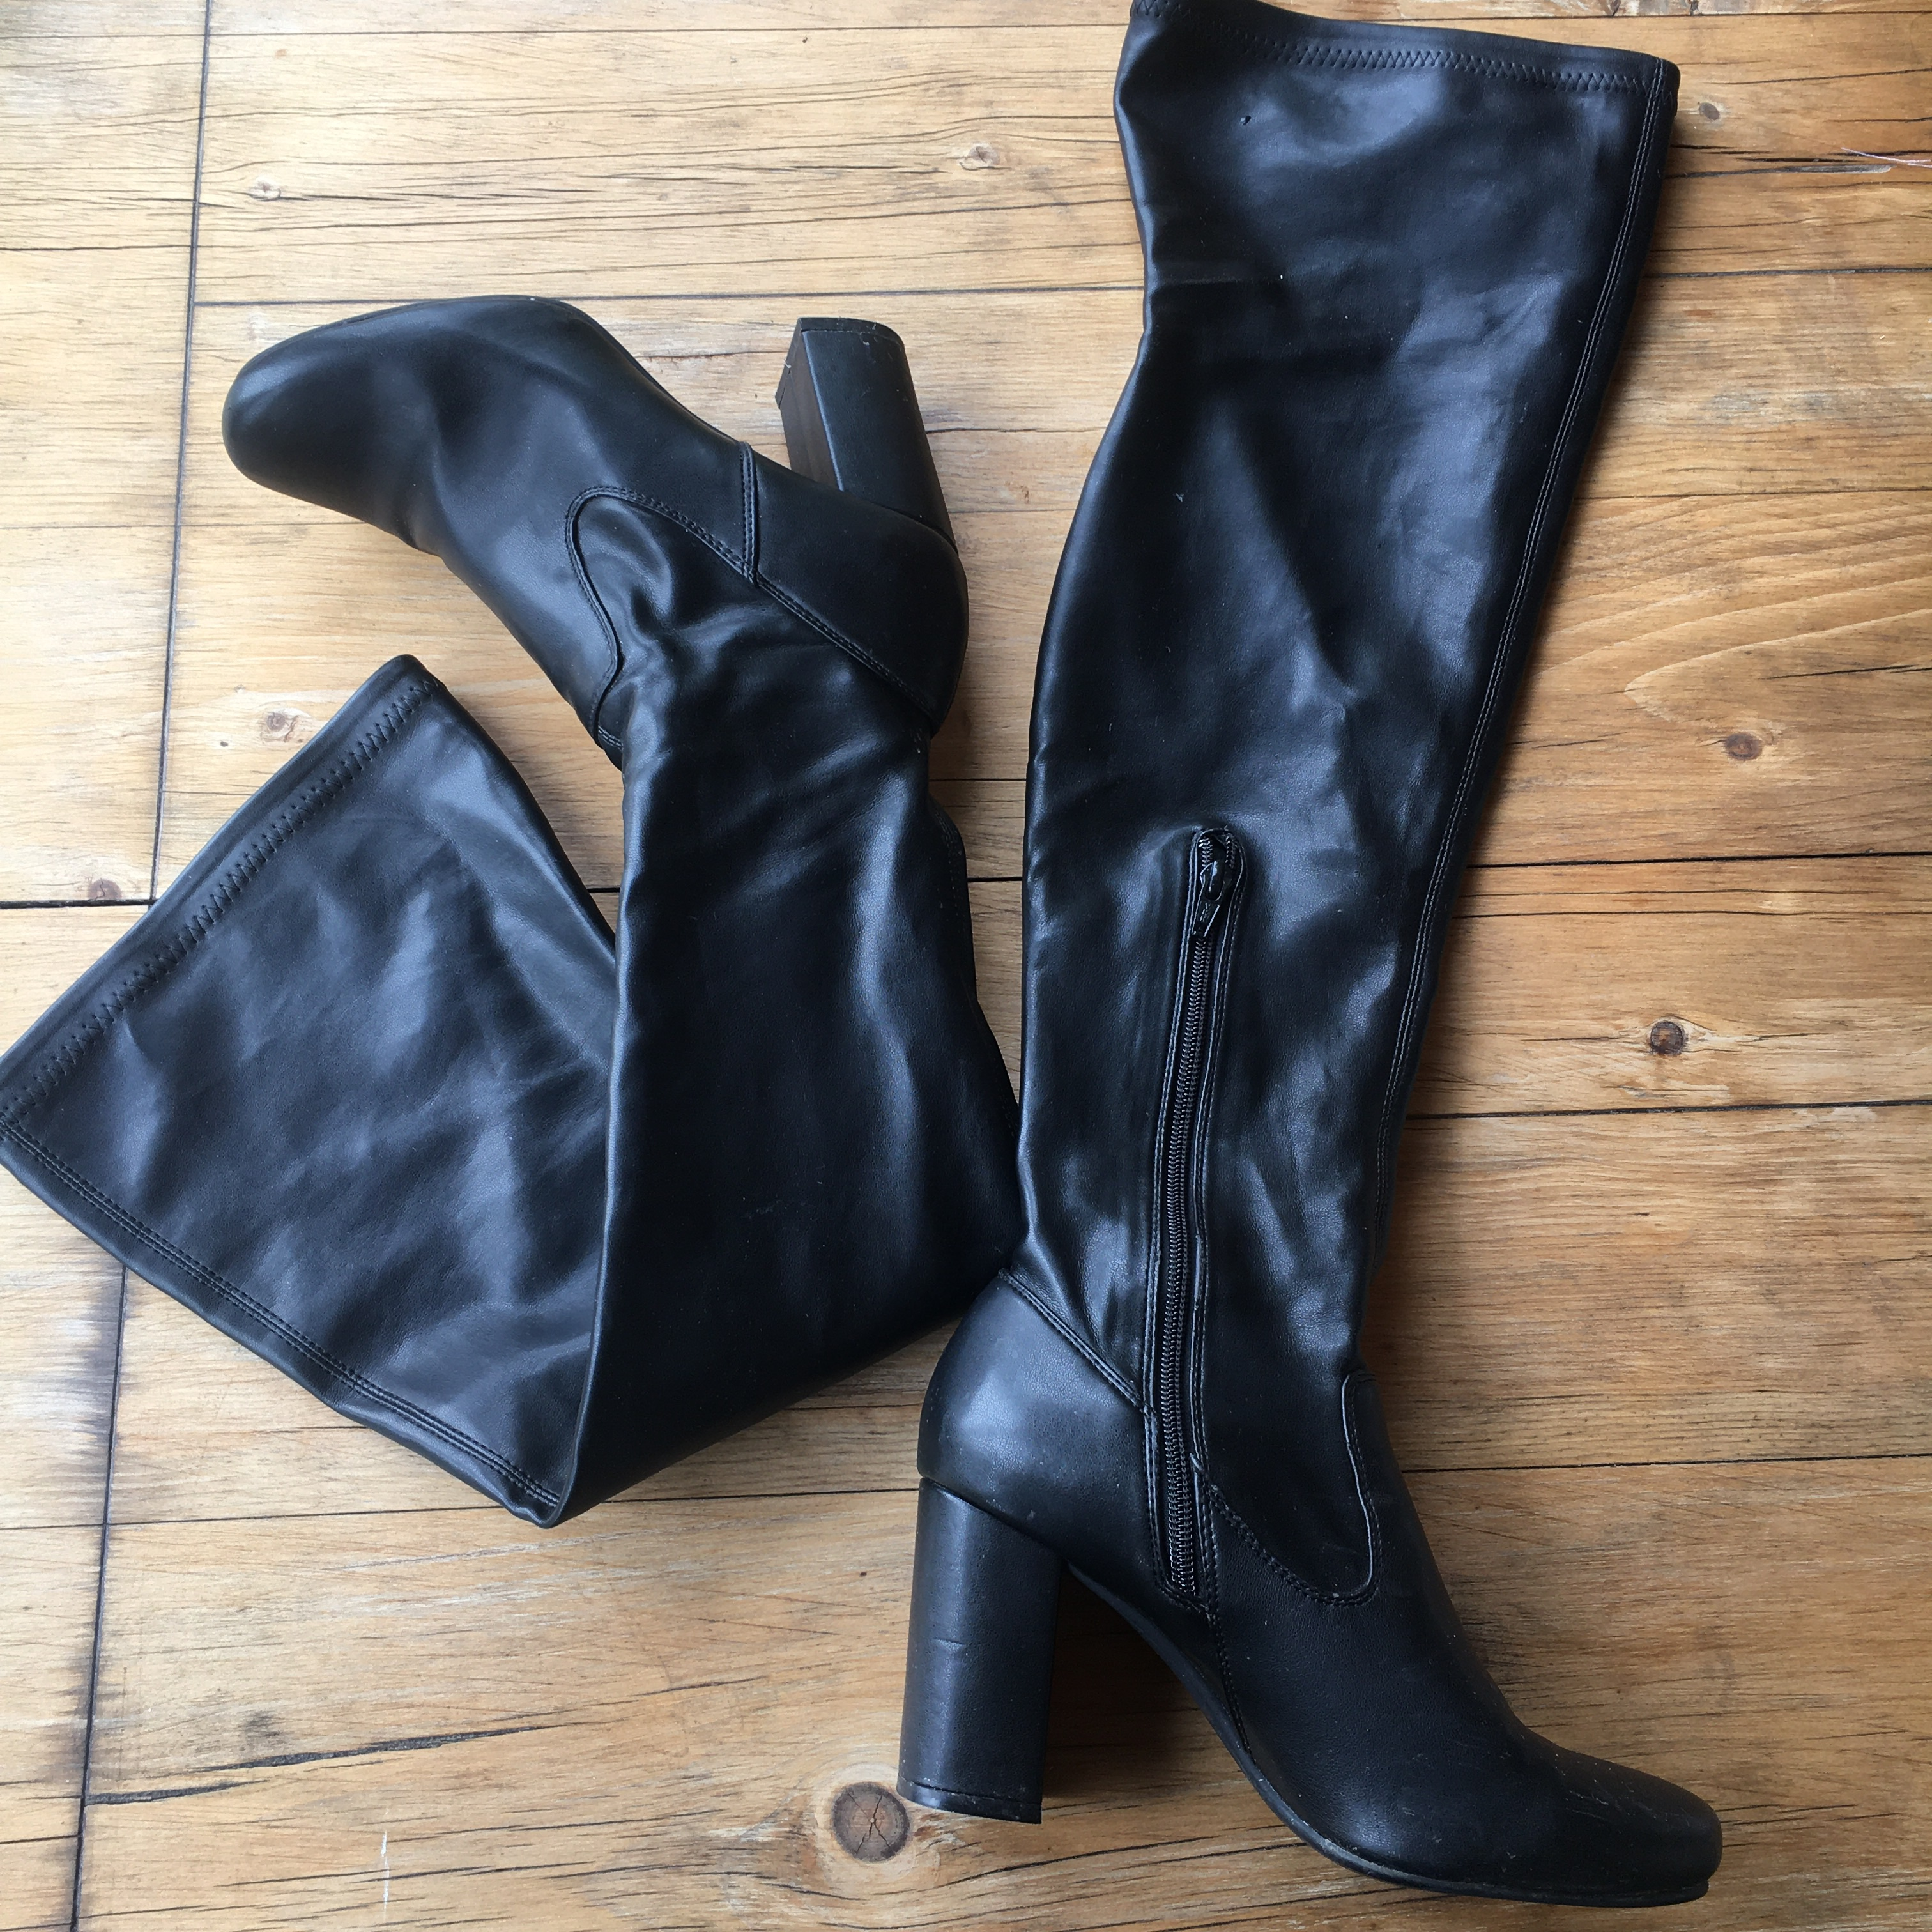 Black leather knee high boots. Size 5